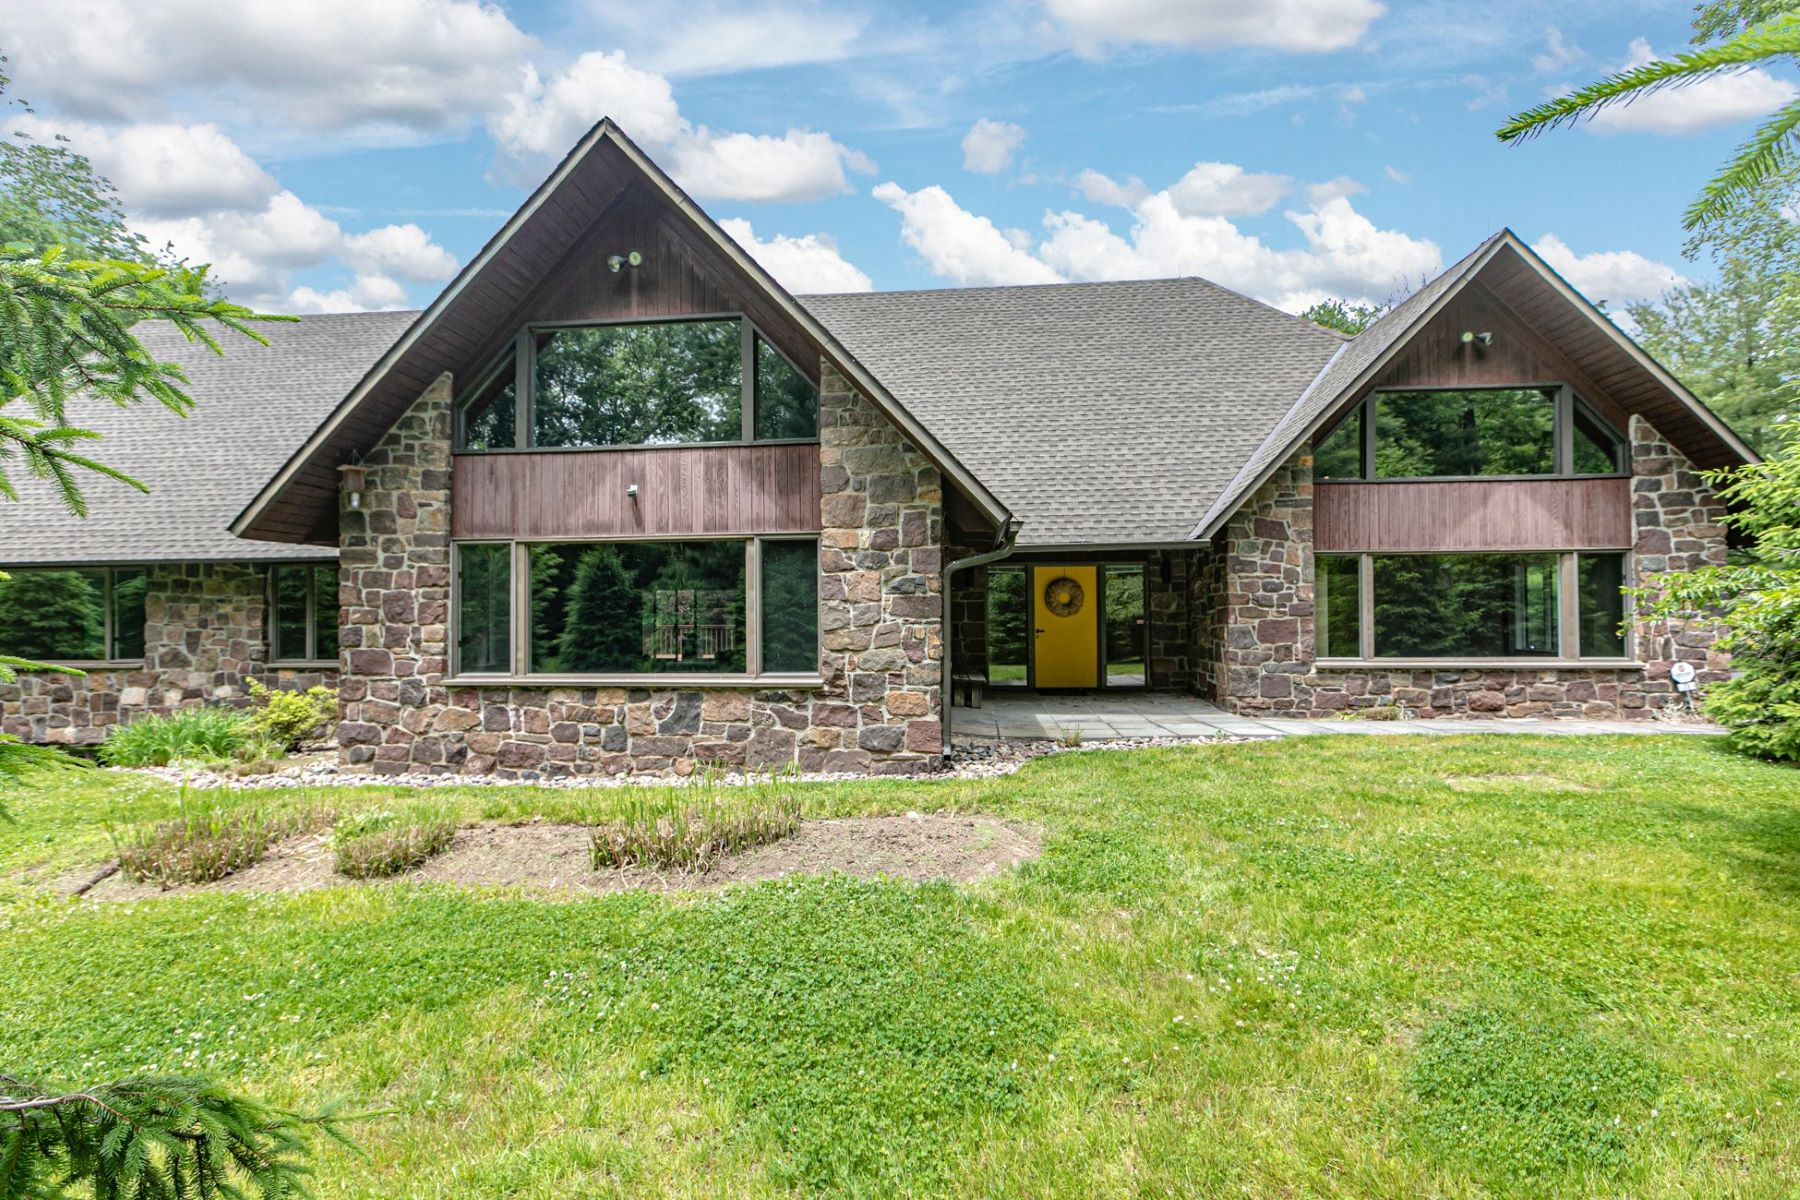 Property for Sale at Like A Private Alpine Lodge 73 Elm Ridge Road, Princeton, New Jersey 08540 United States